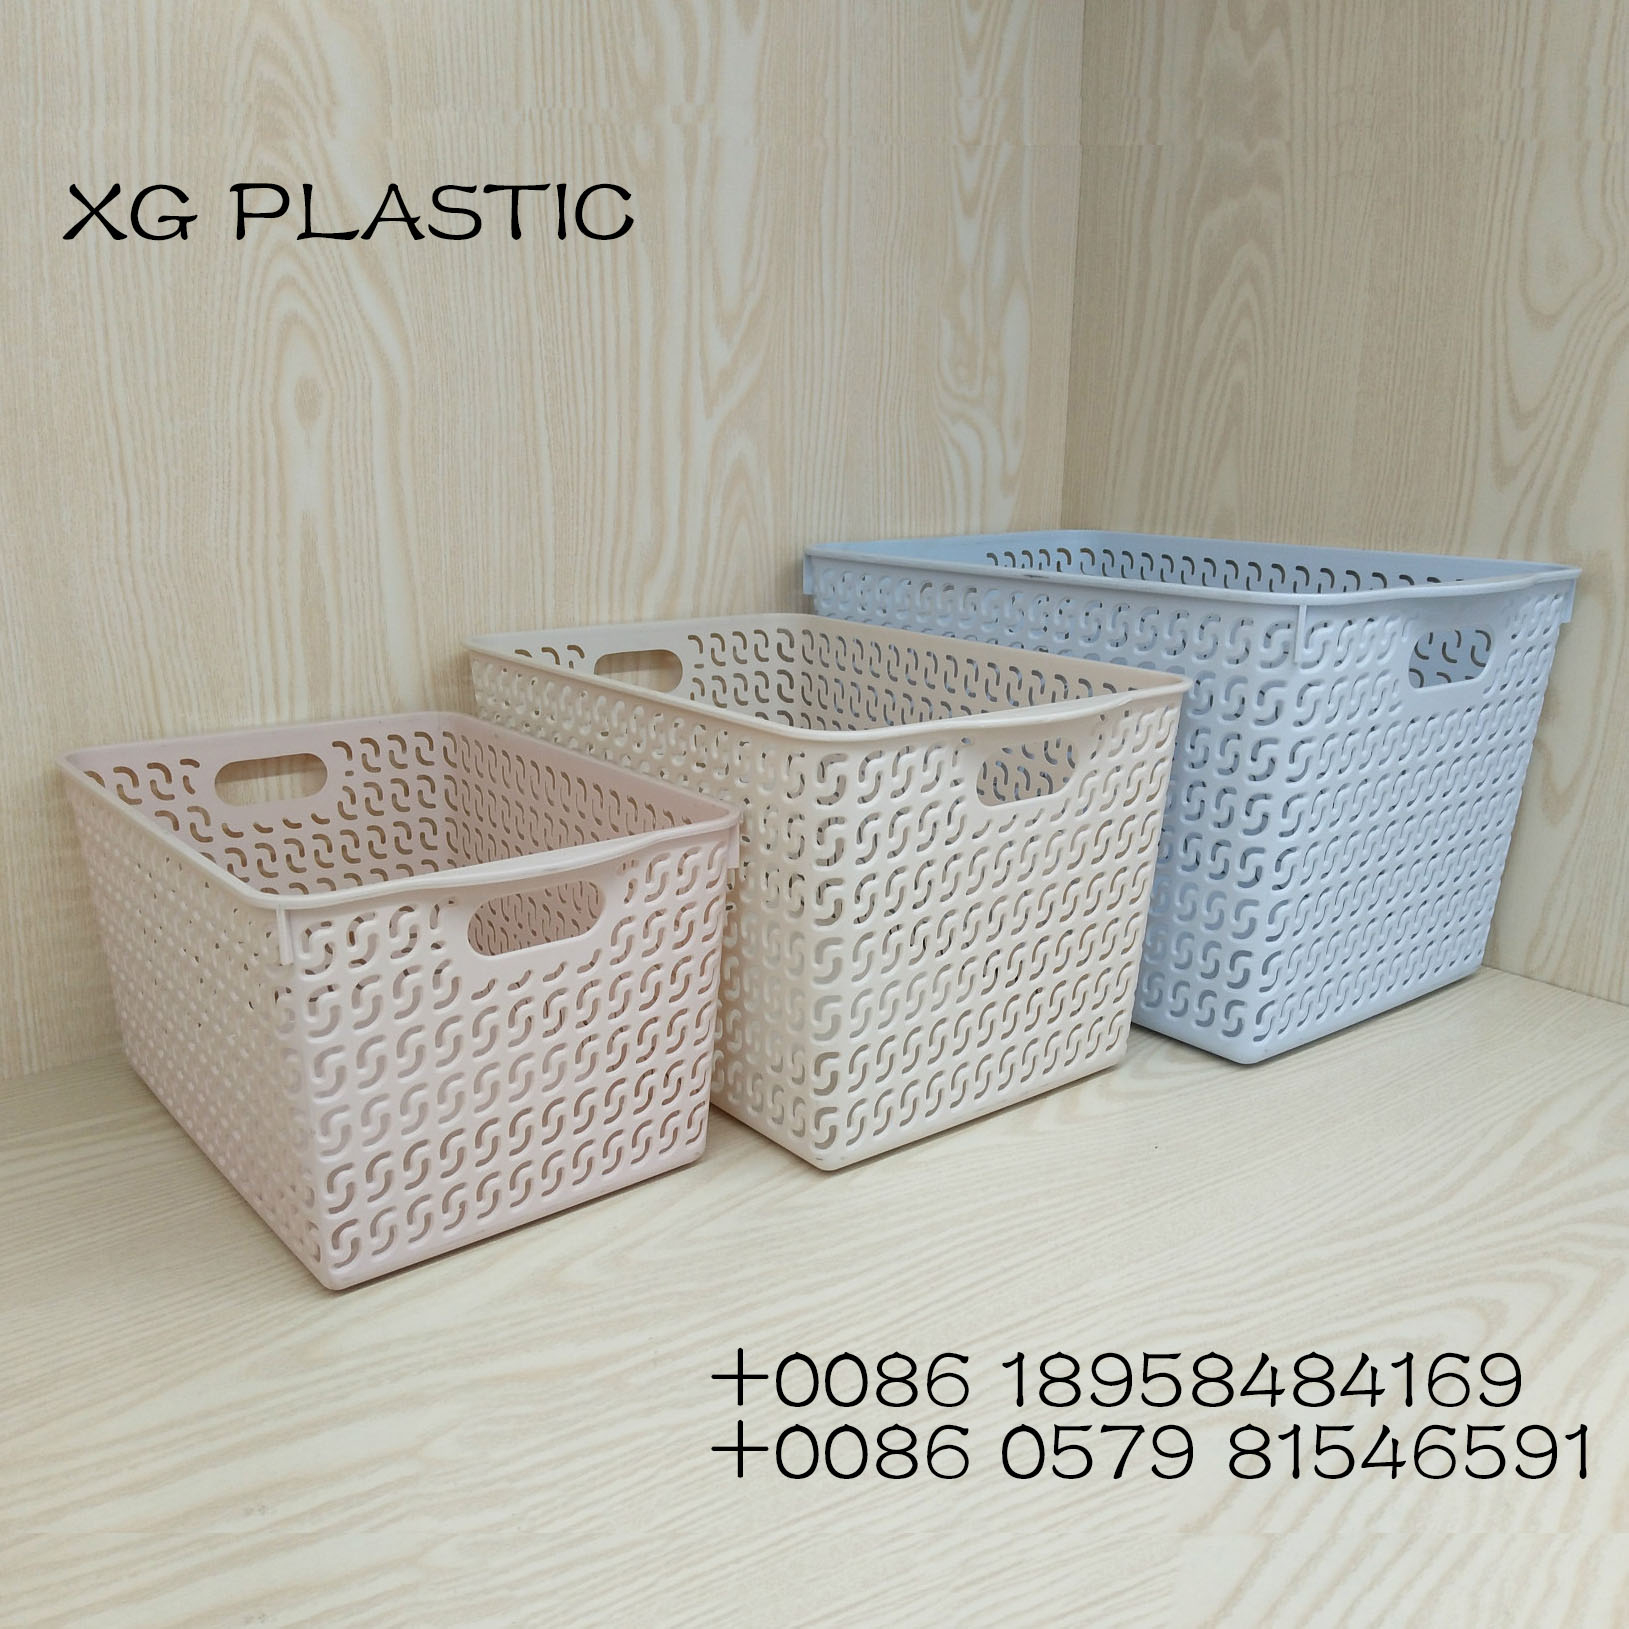 Supply Plastic Storage Baskets Bins Organizer With Handles intended for size 1629 X 1629